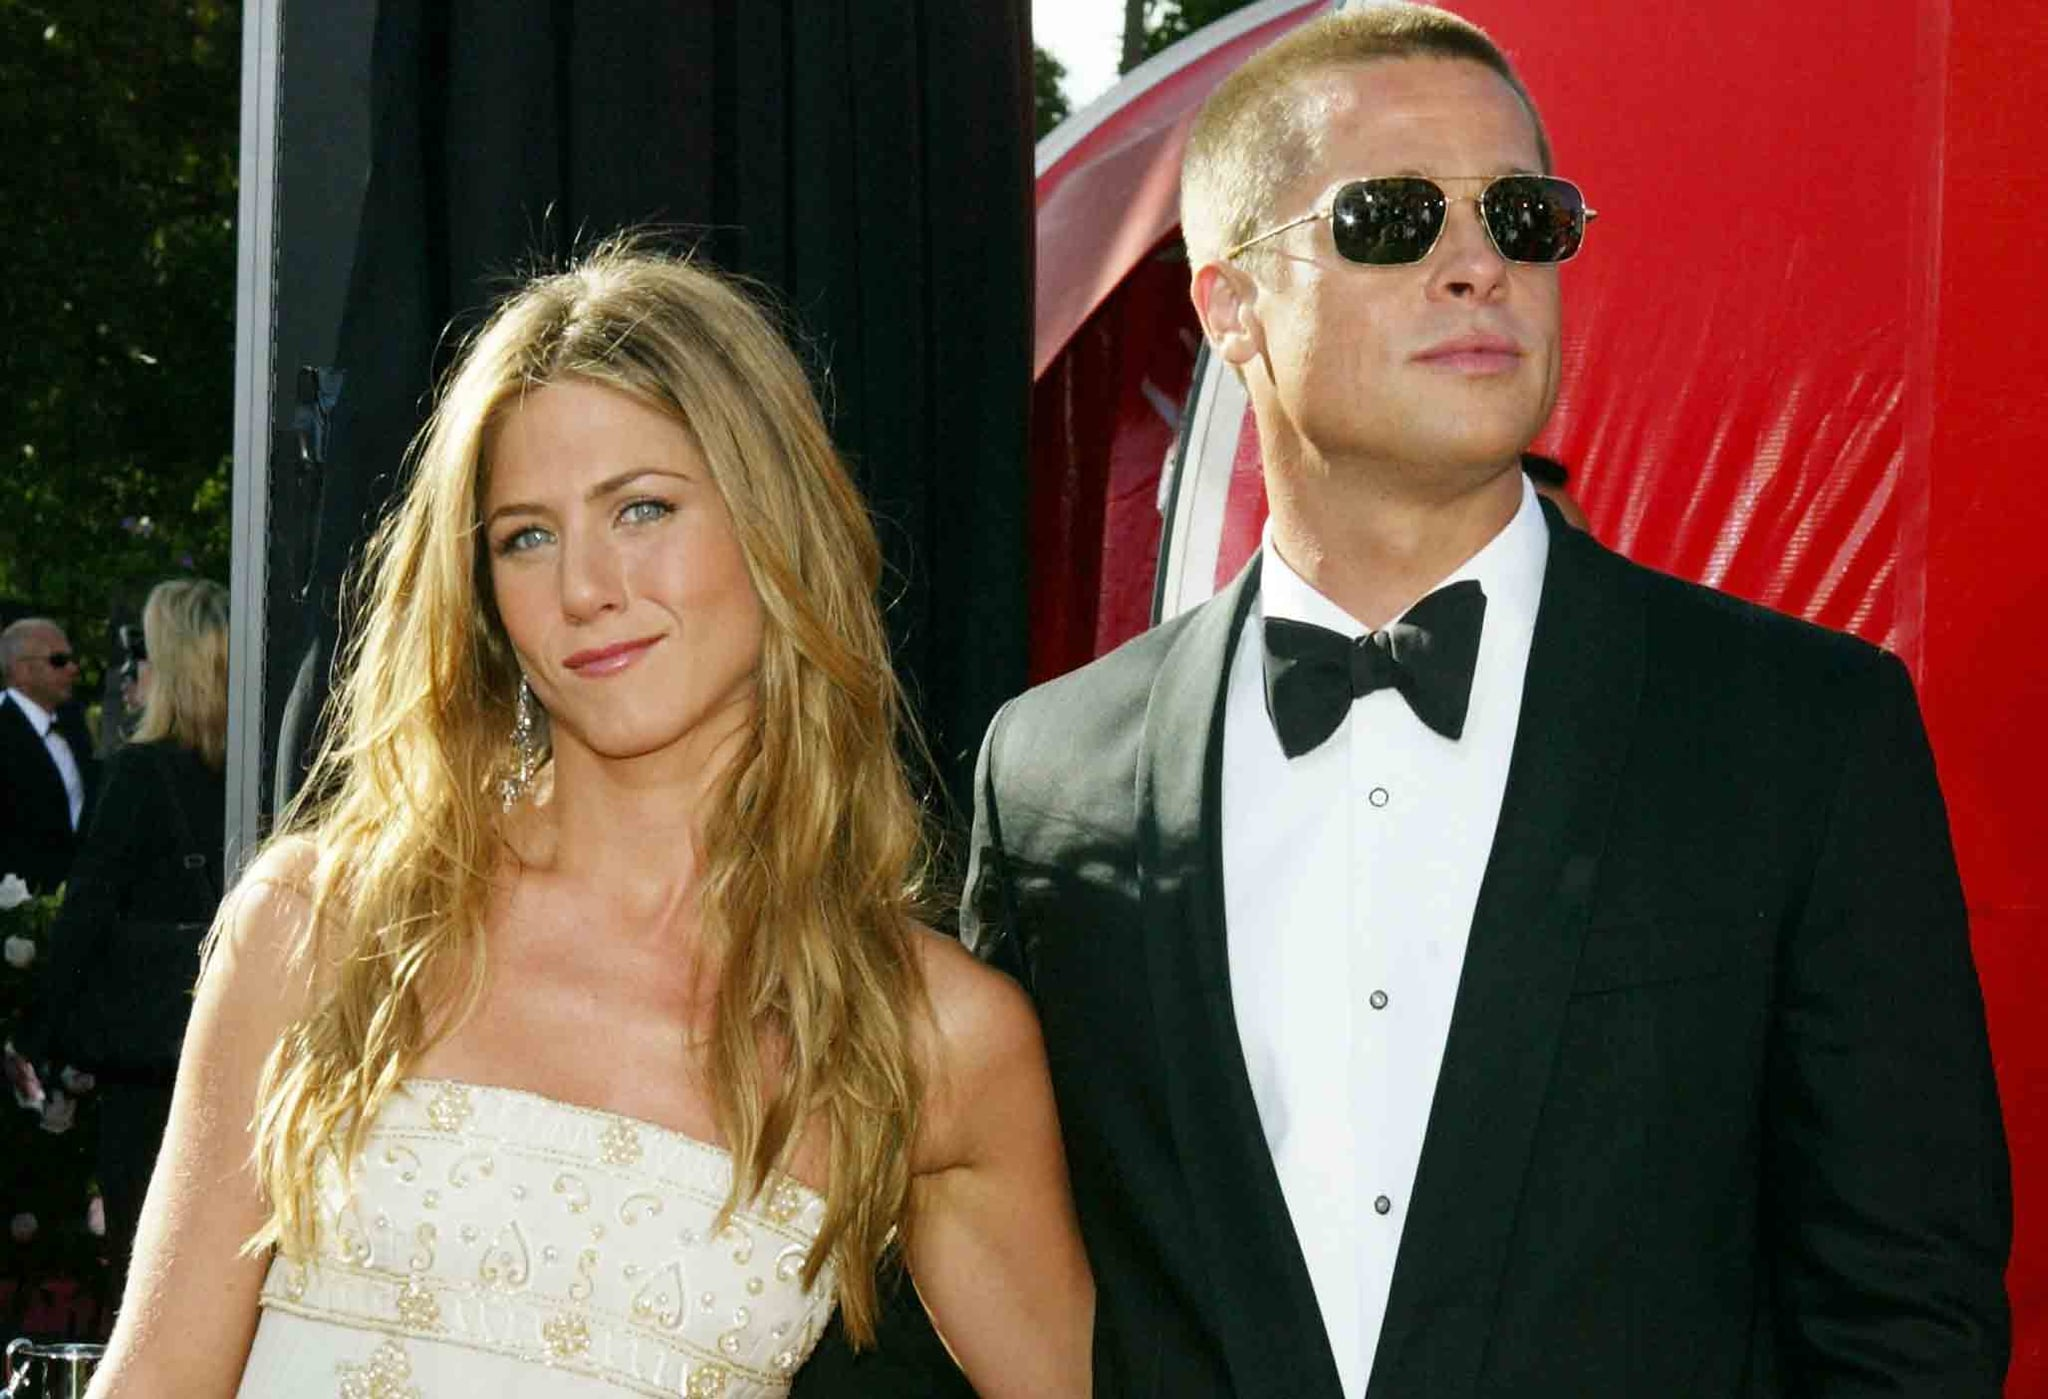 Jennifer aniston and brad pitt wedding vows